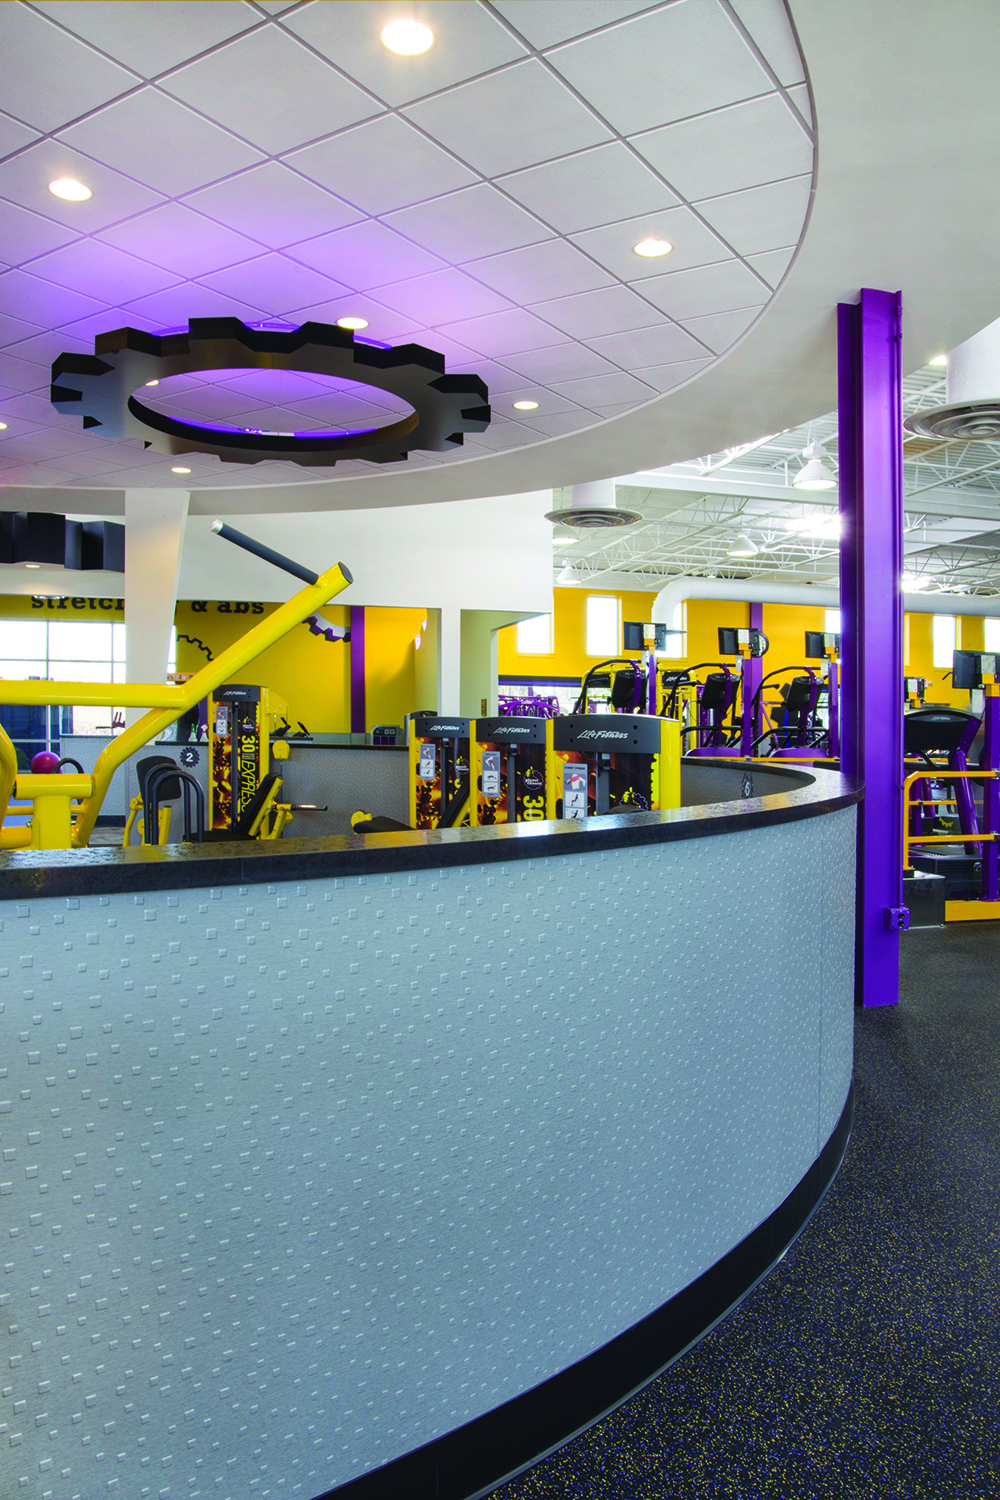 27 – Planet Fitness